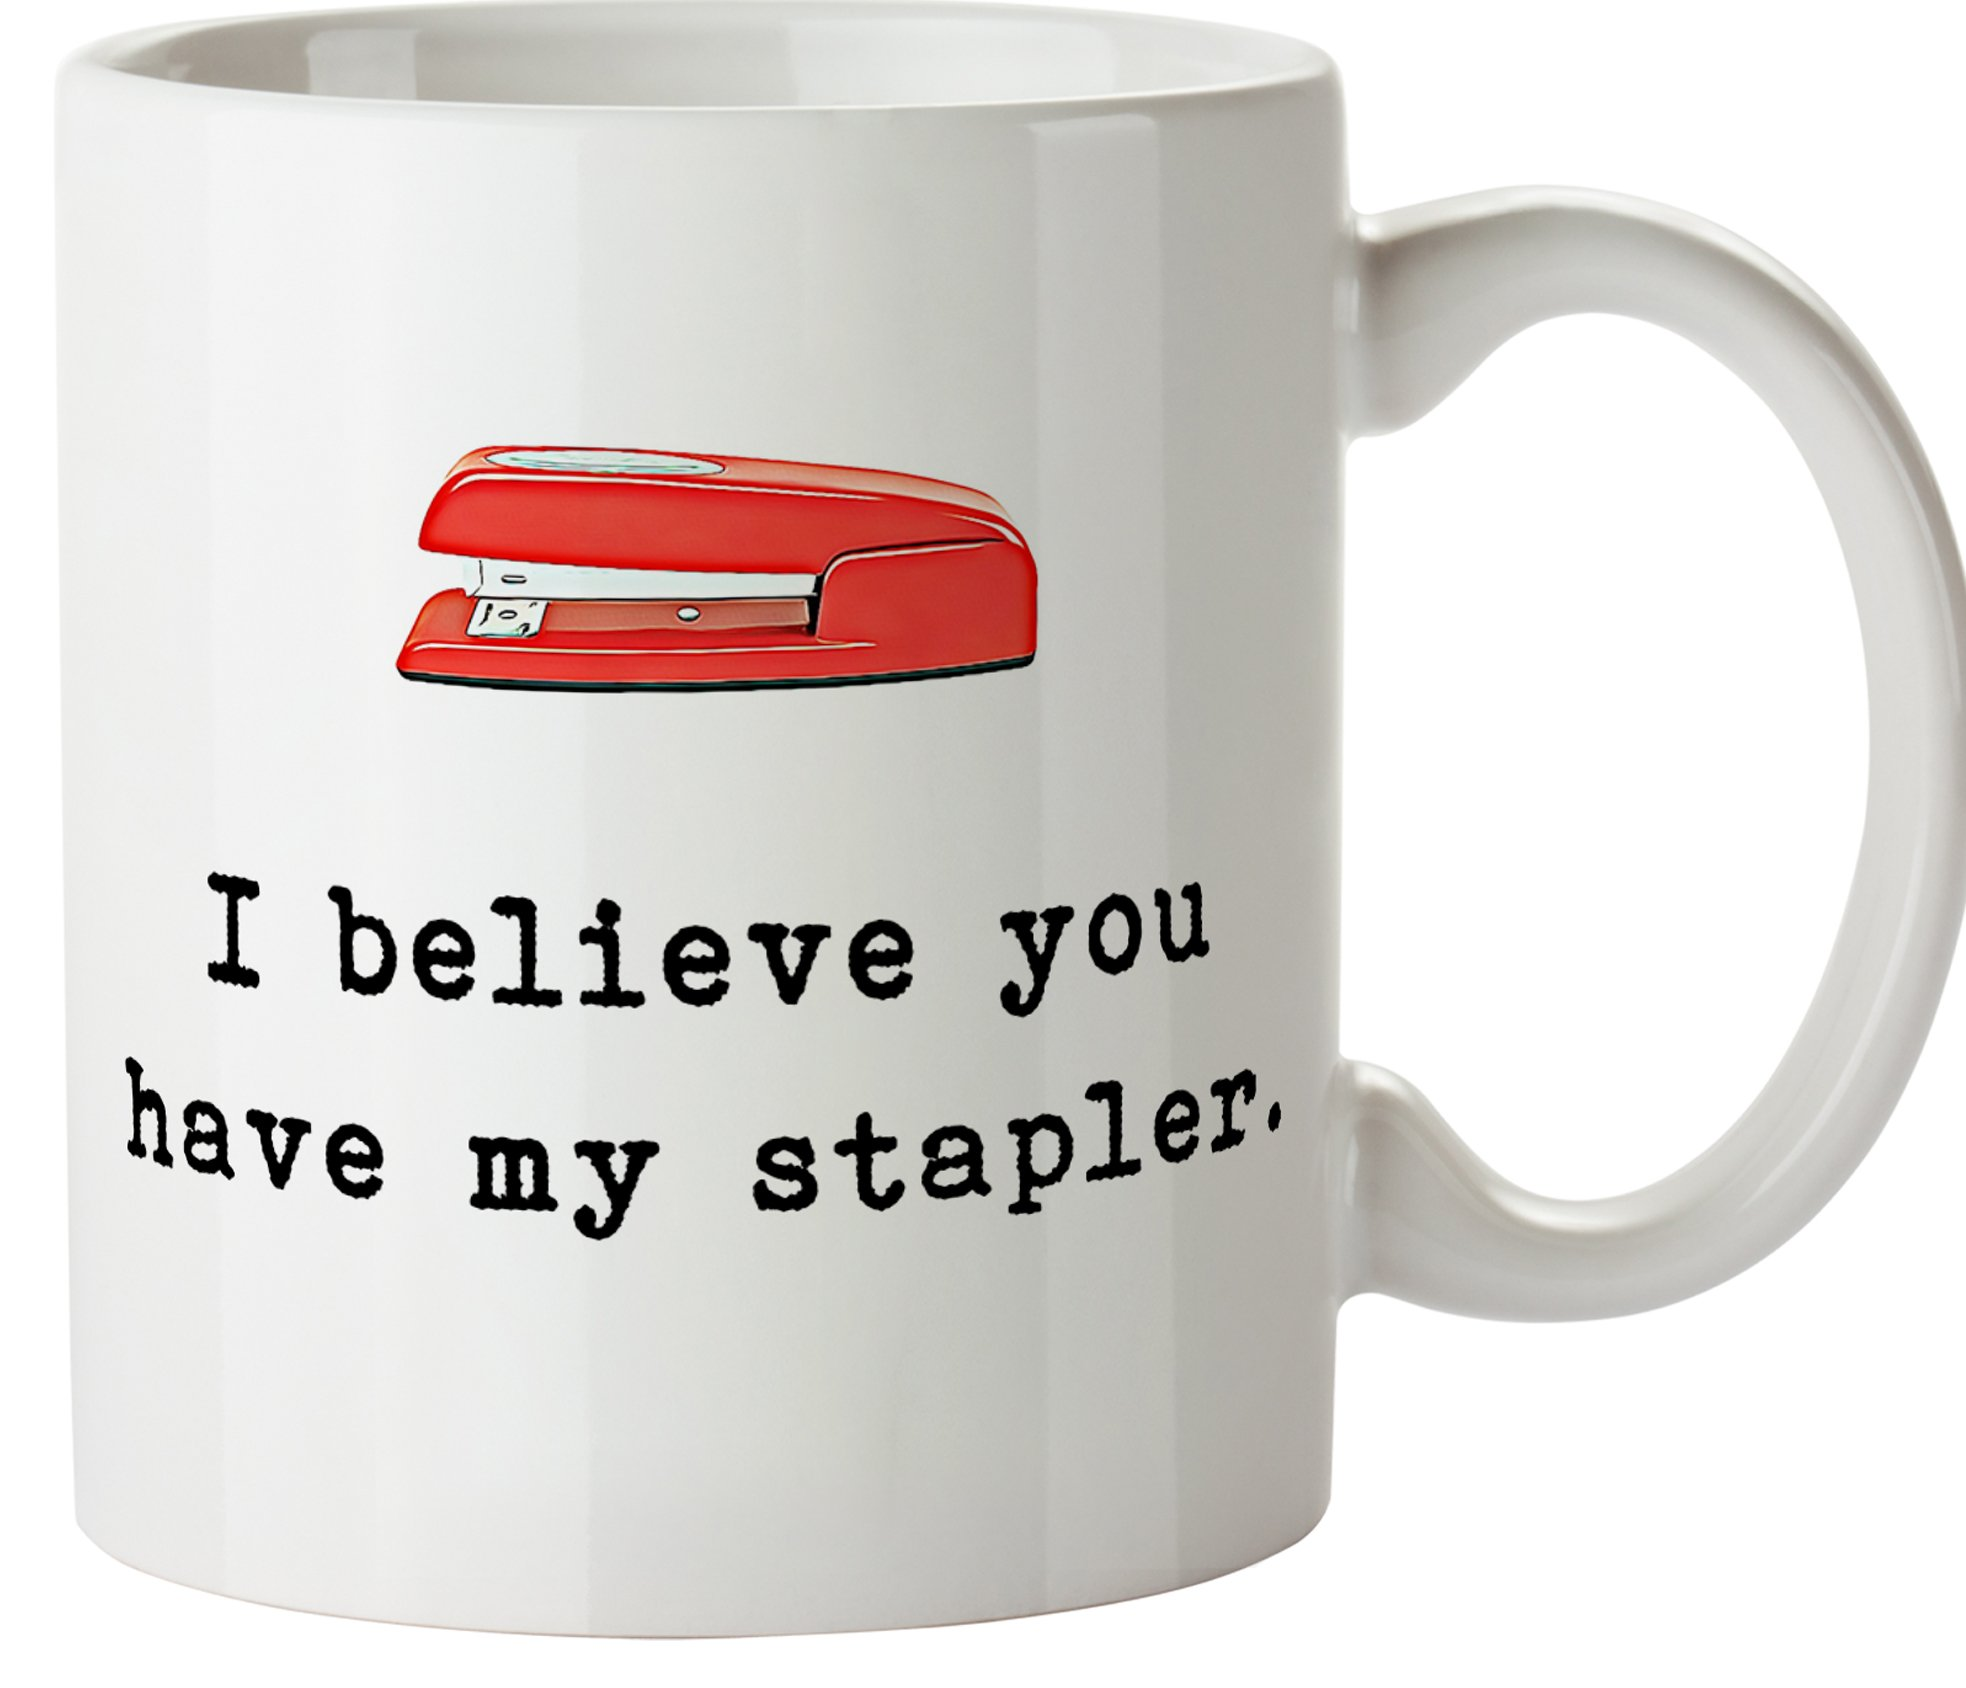 Red Stapler Movie Quote - 11oz Ceramic Funny Coffee Mug Gift for Boss Co-worker Mom Dad Friend The Office Inspired